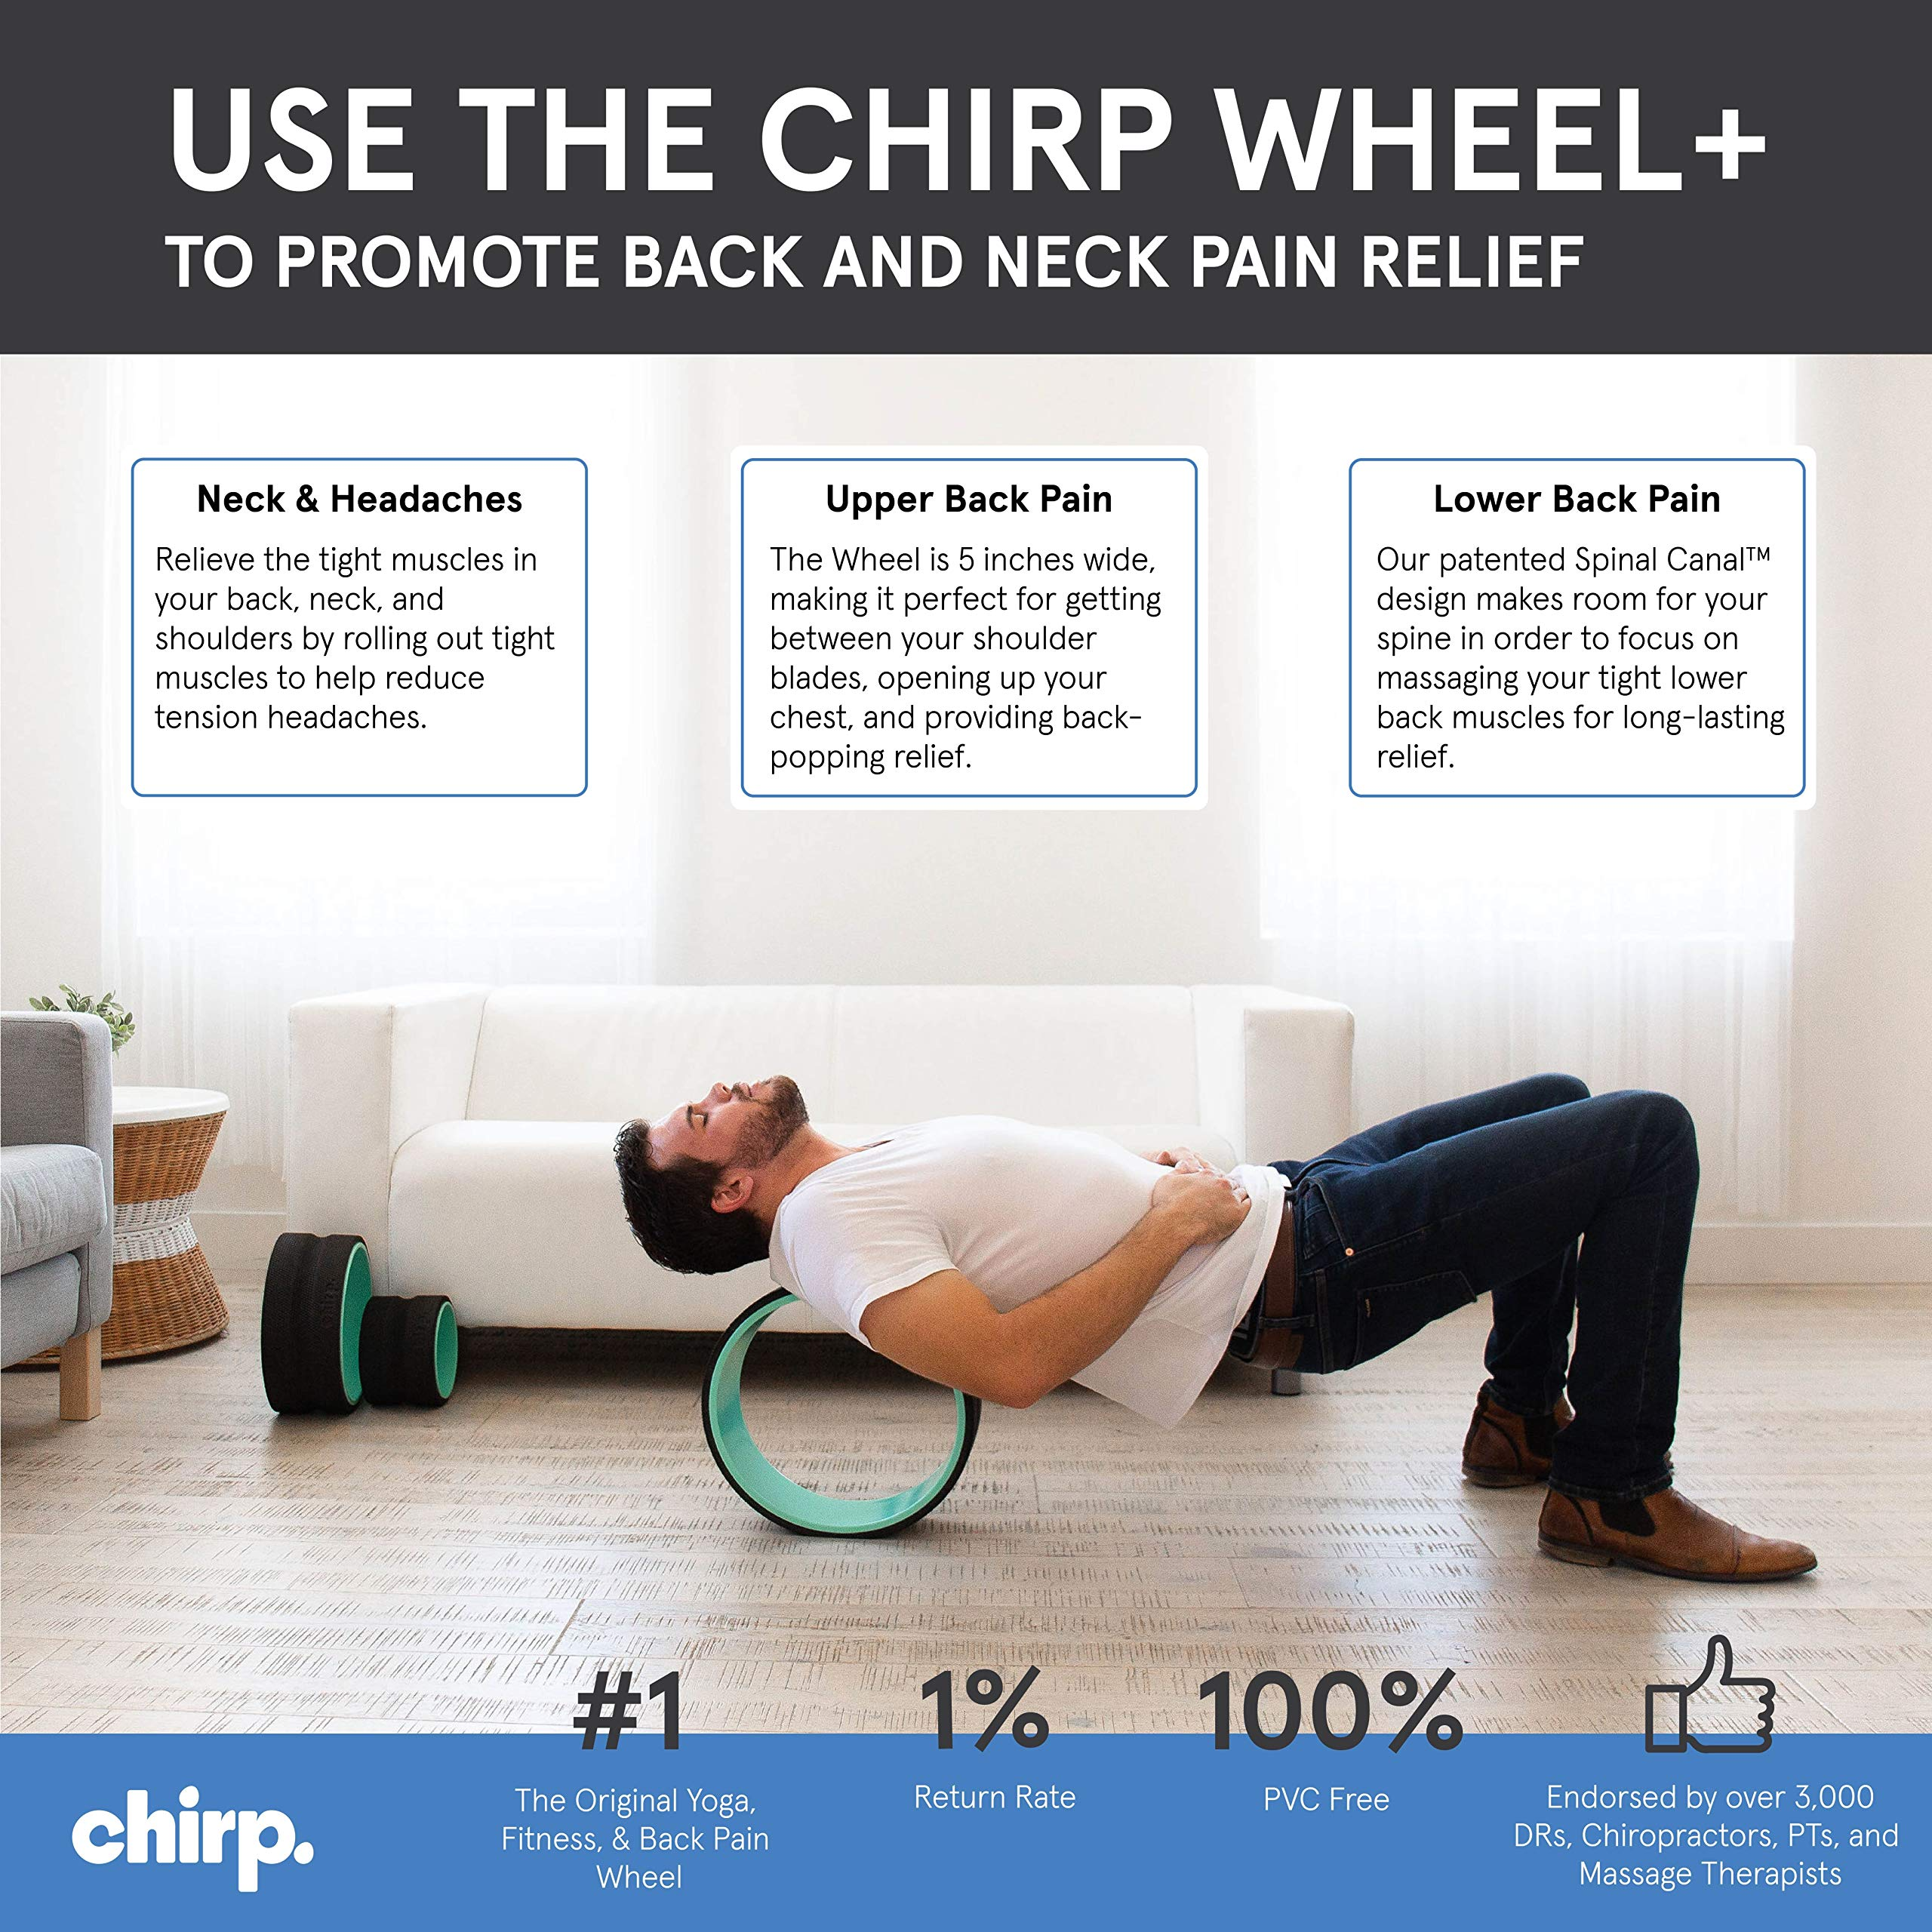 "Plexus Chirp 10"" Deep Tissue Wheel+ for Back Pain, Stretches and Strengthens Core Muscles, Relieves Strain to Muscles and Ligaments, helps Prevent Herniated/Bulging Discs, and Arthritis (10"" - Medium)"